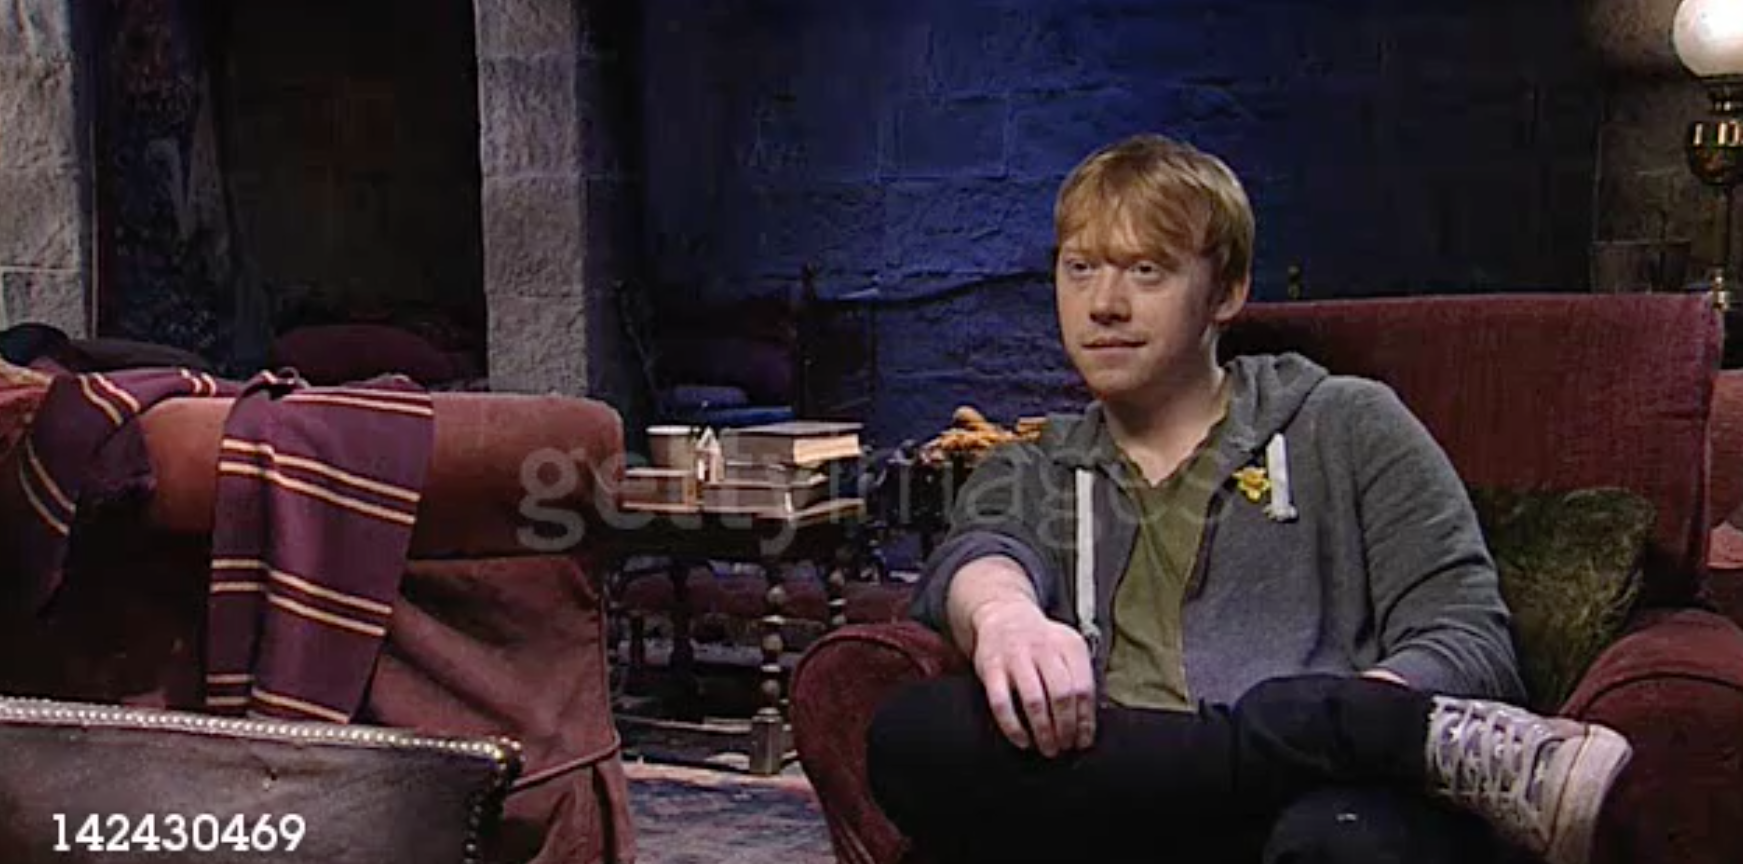 Harry Potter Studio Tour Interview (Part 1)